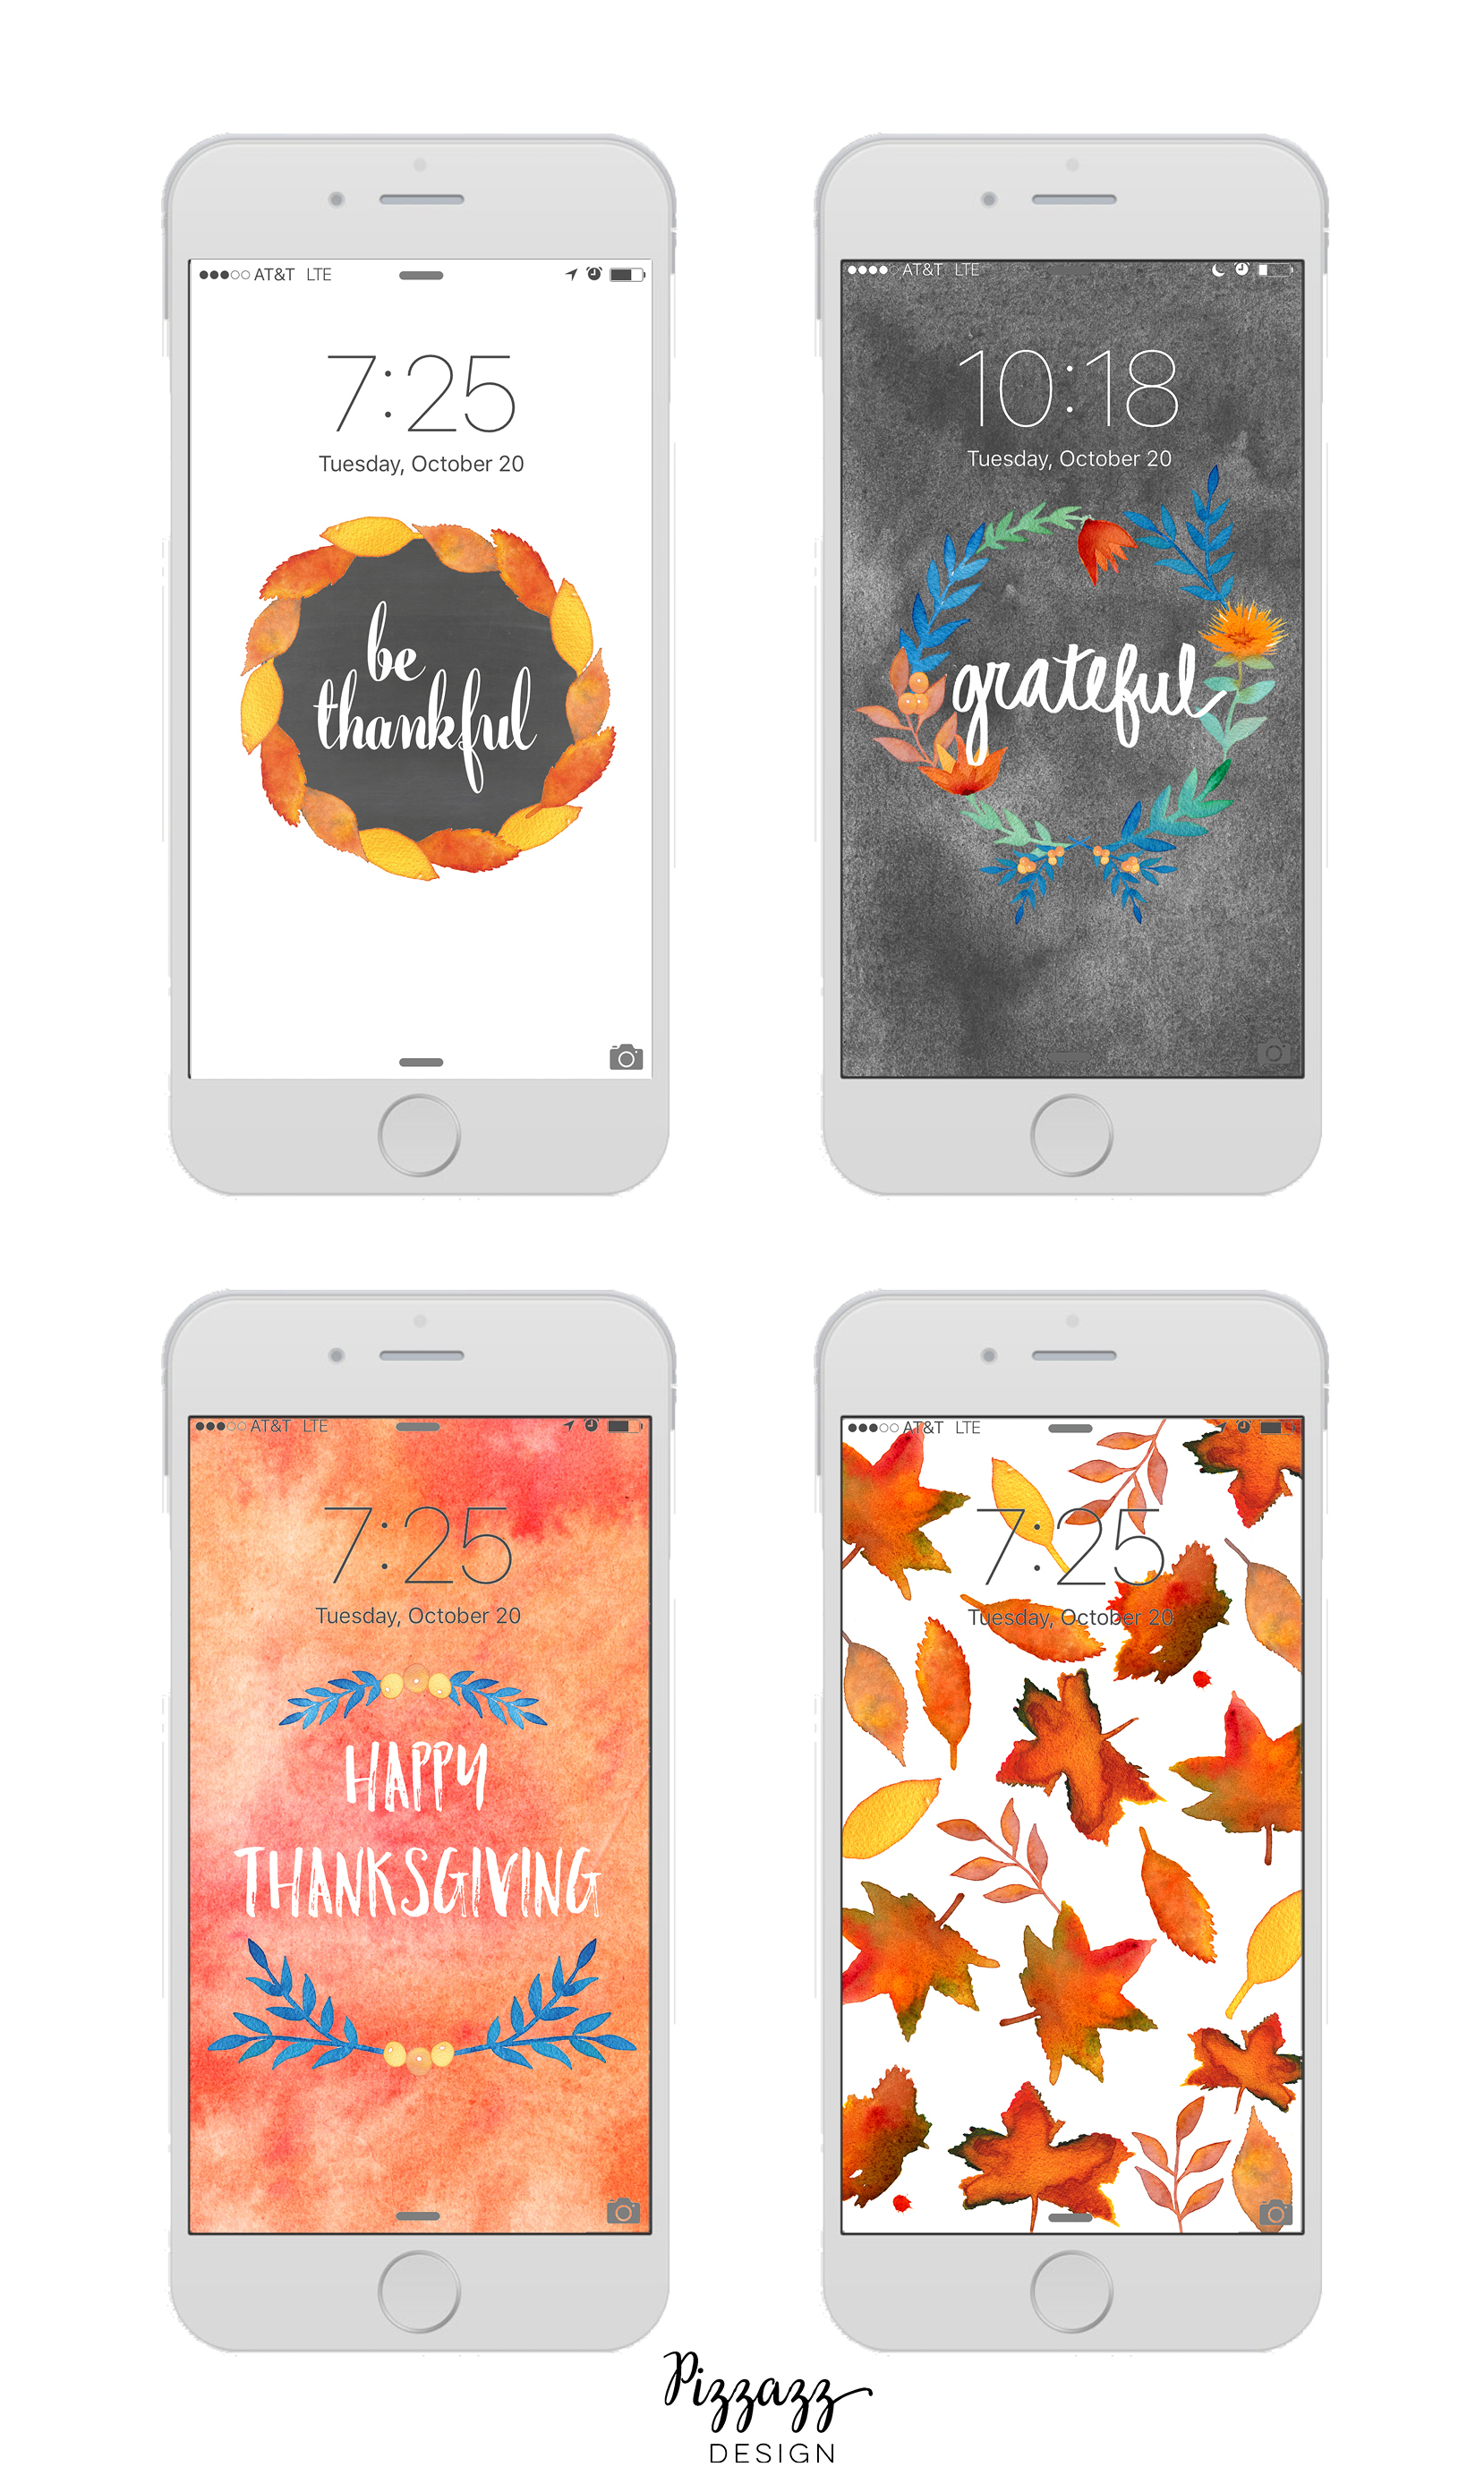 Free Seasonal Thanksgiving iPhone Wallpapers! Pizzazz Design Blog